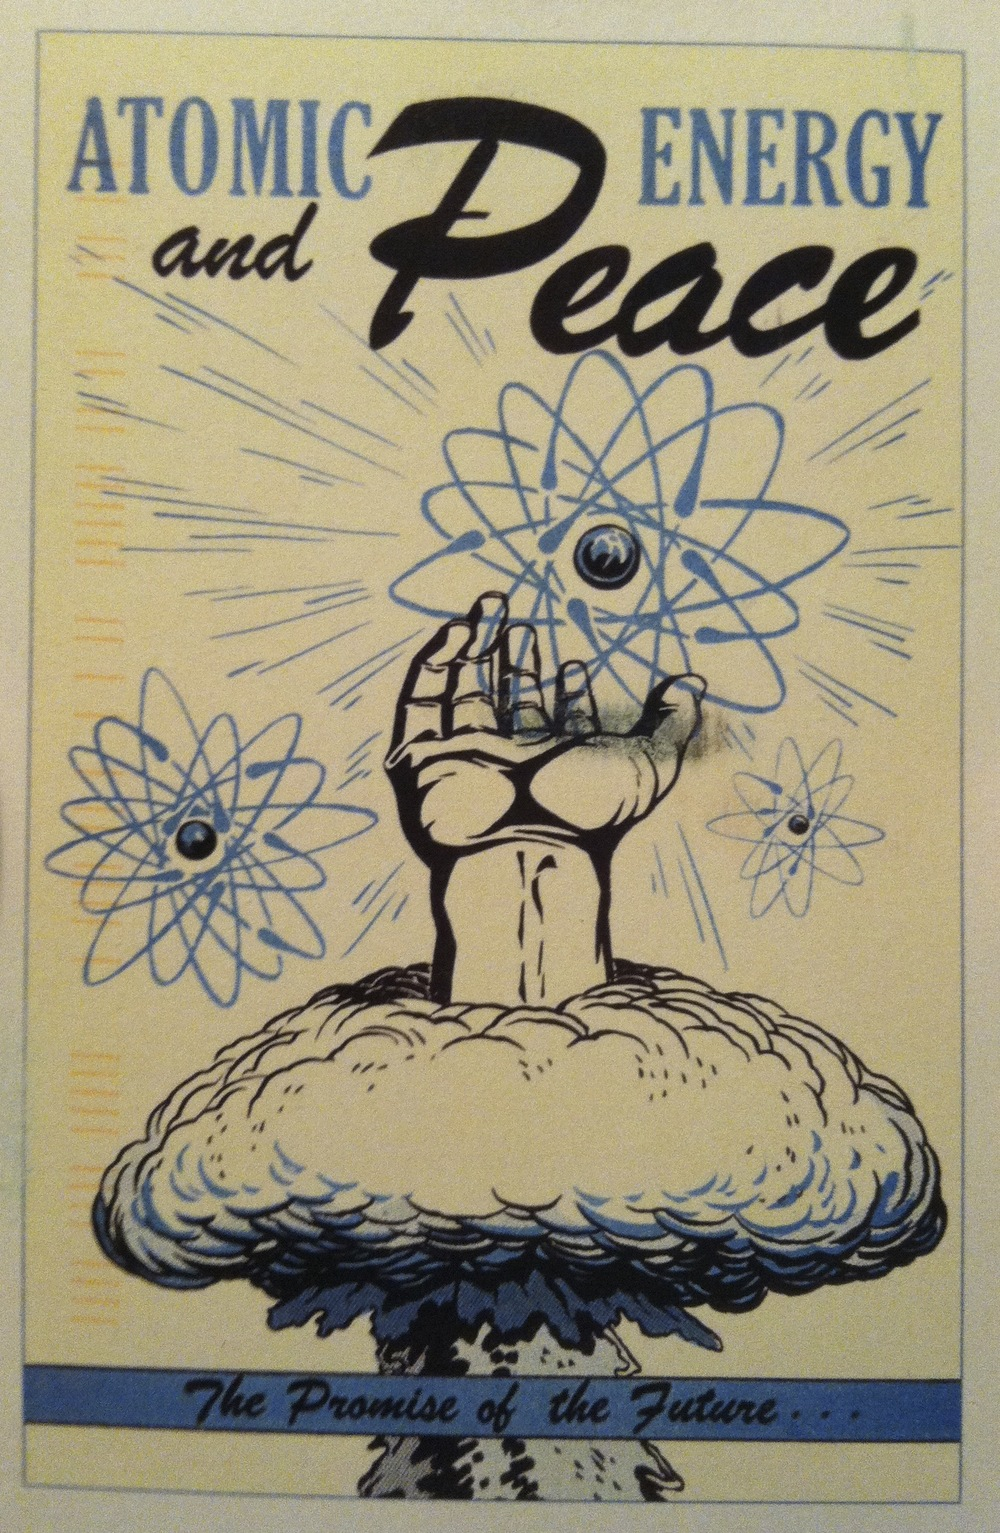 Atomic Energy and Peace postcard